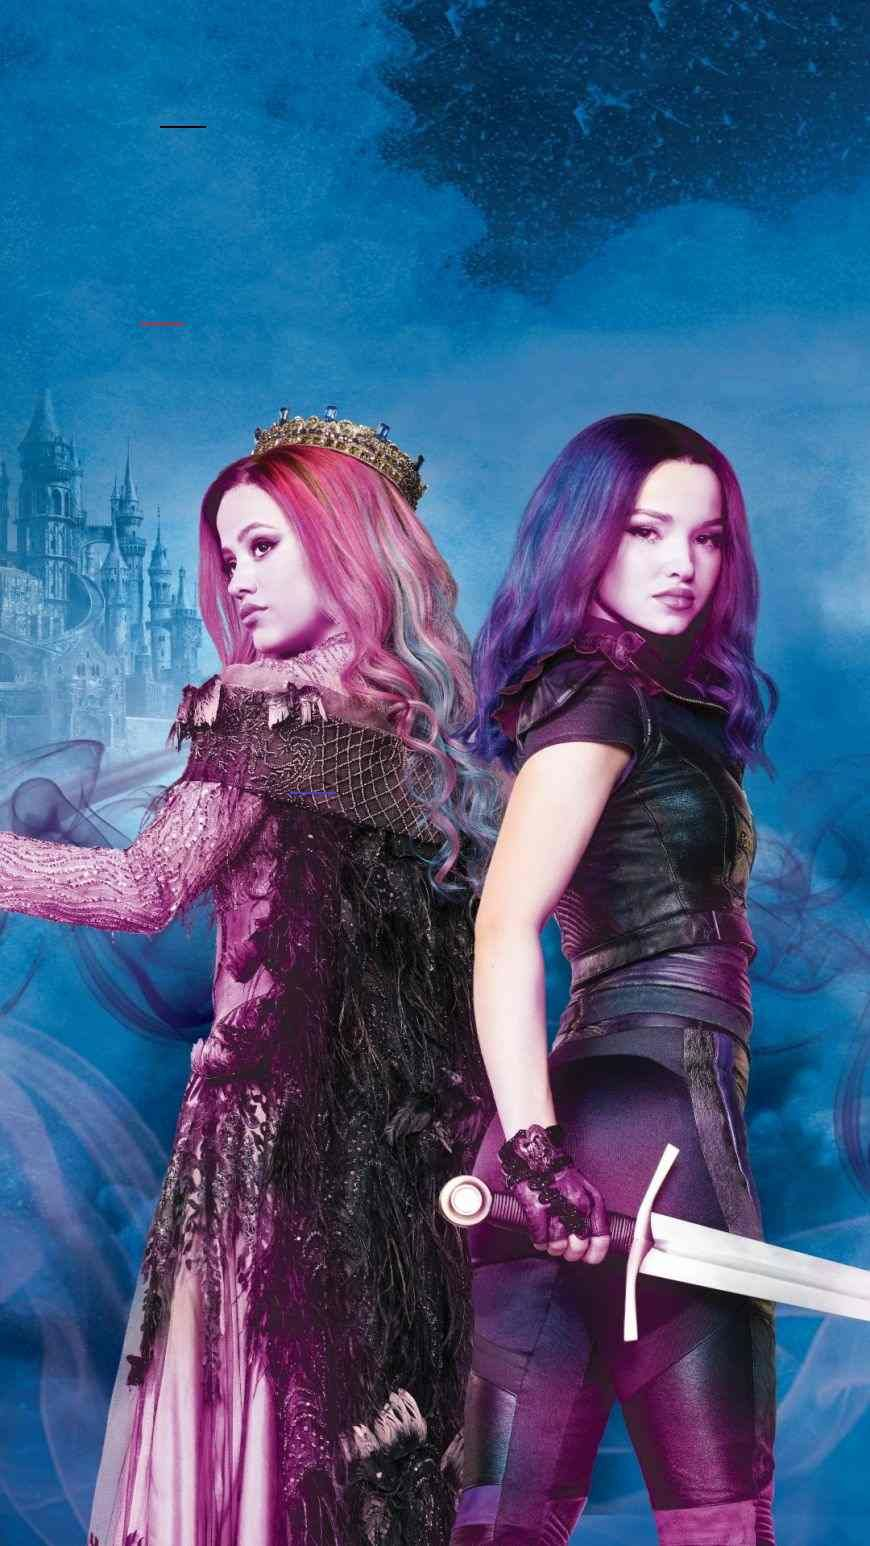 audreydescendants3 in 2020 Disney descendants 3, Disney